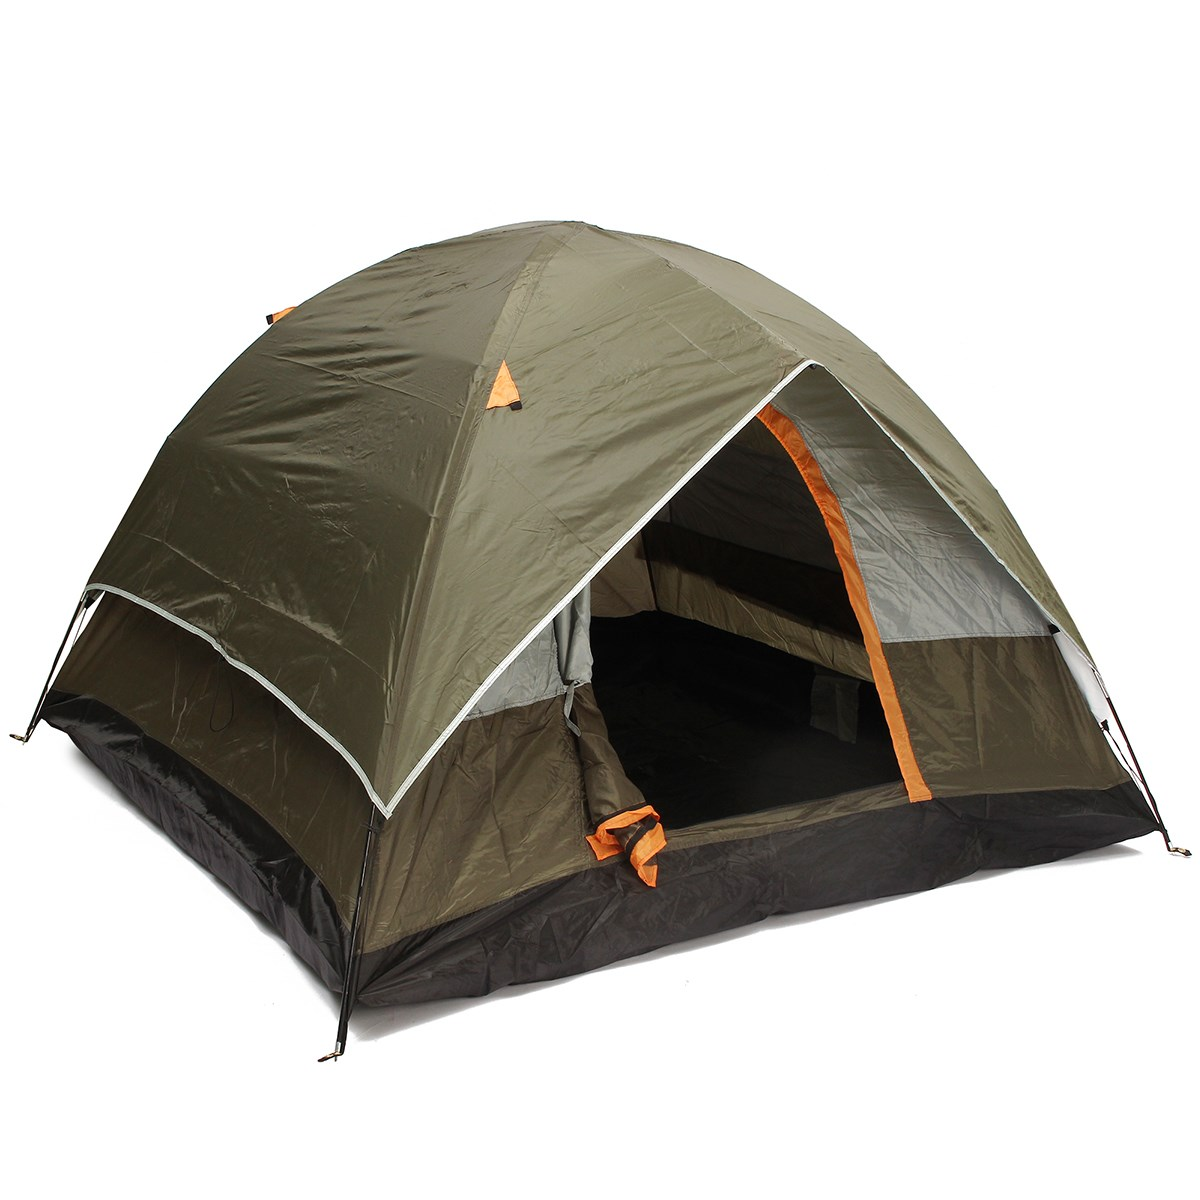 200*200*130cm Oxford cloth 190T polyester PU waterproof coating 4 seasons 4 people double layer outdoor camping hiking tent 4 200 4 200 500